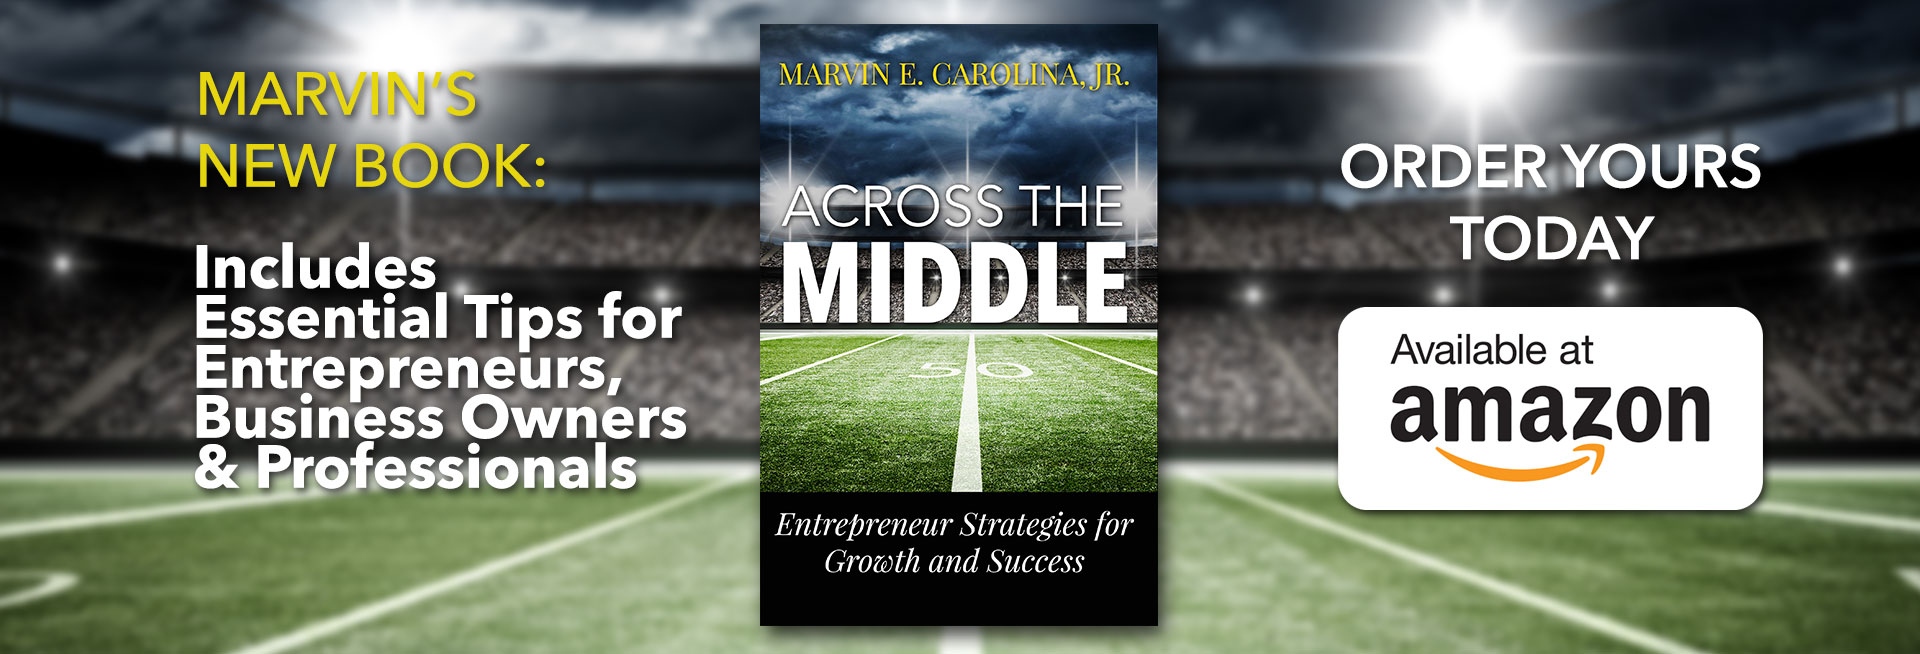 Across the Middle: Entrepreneur Strategies for Growth and Success